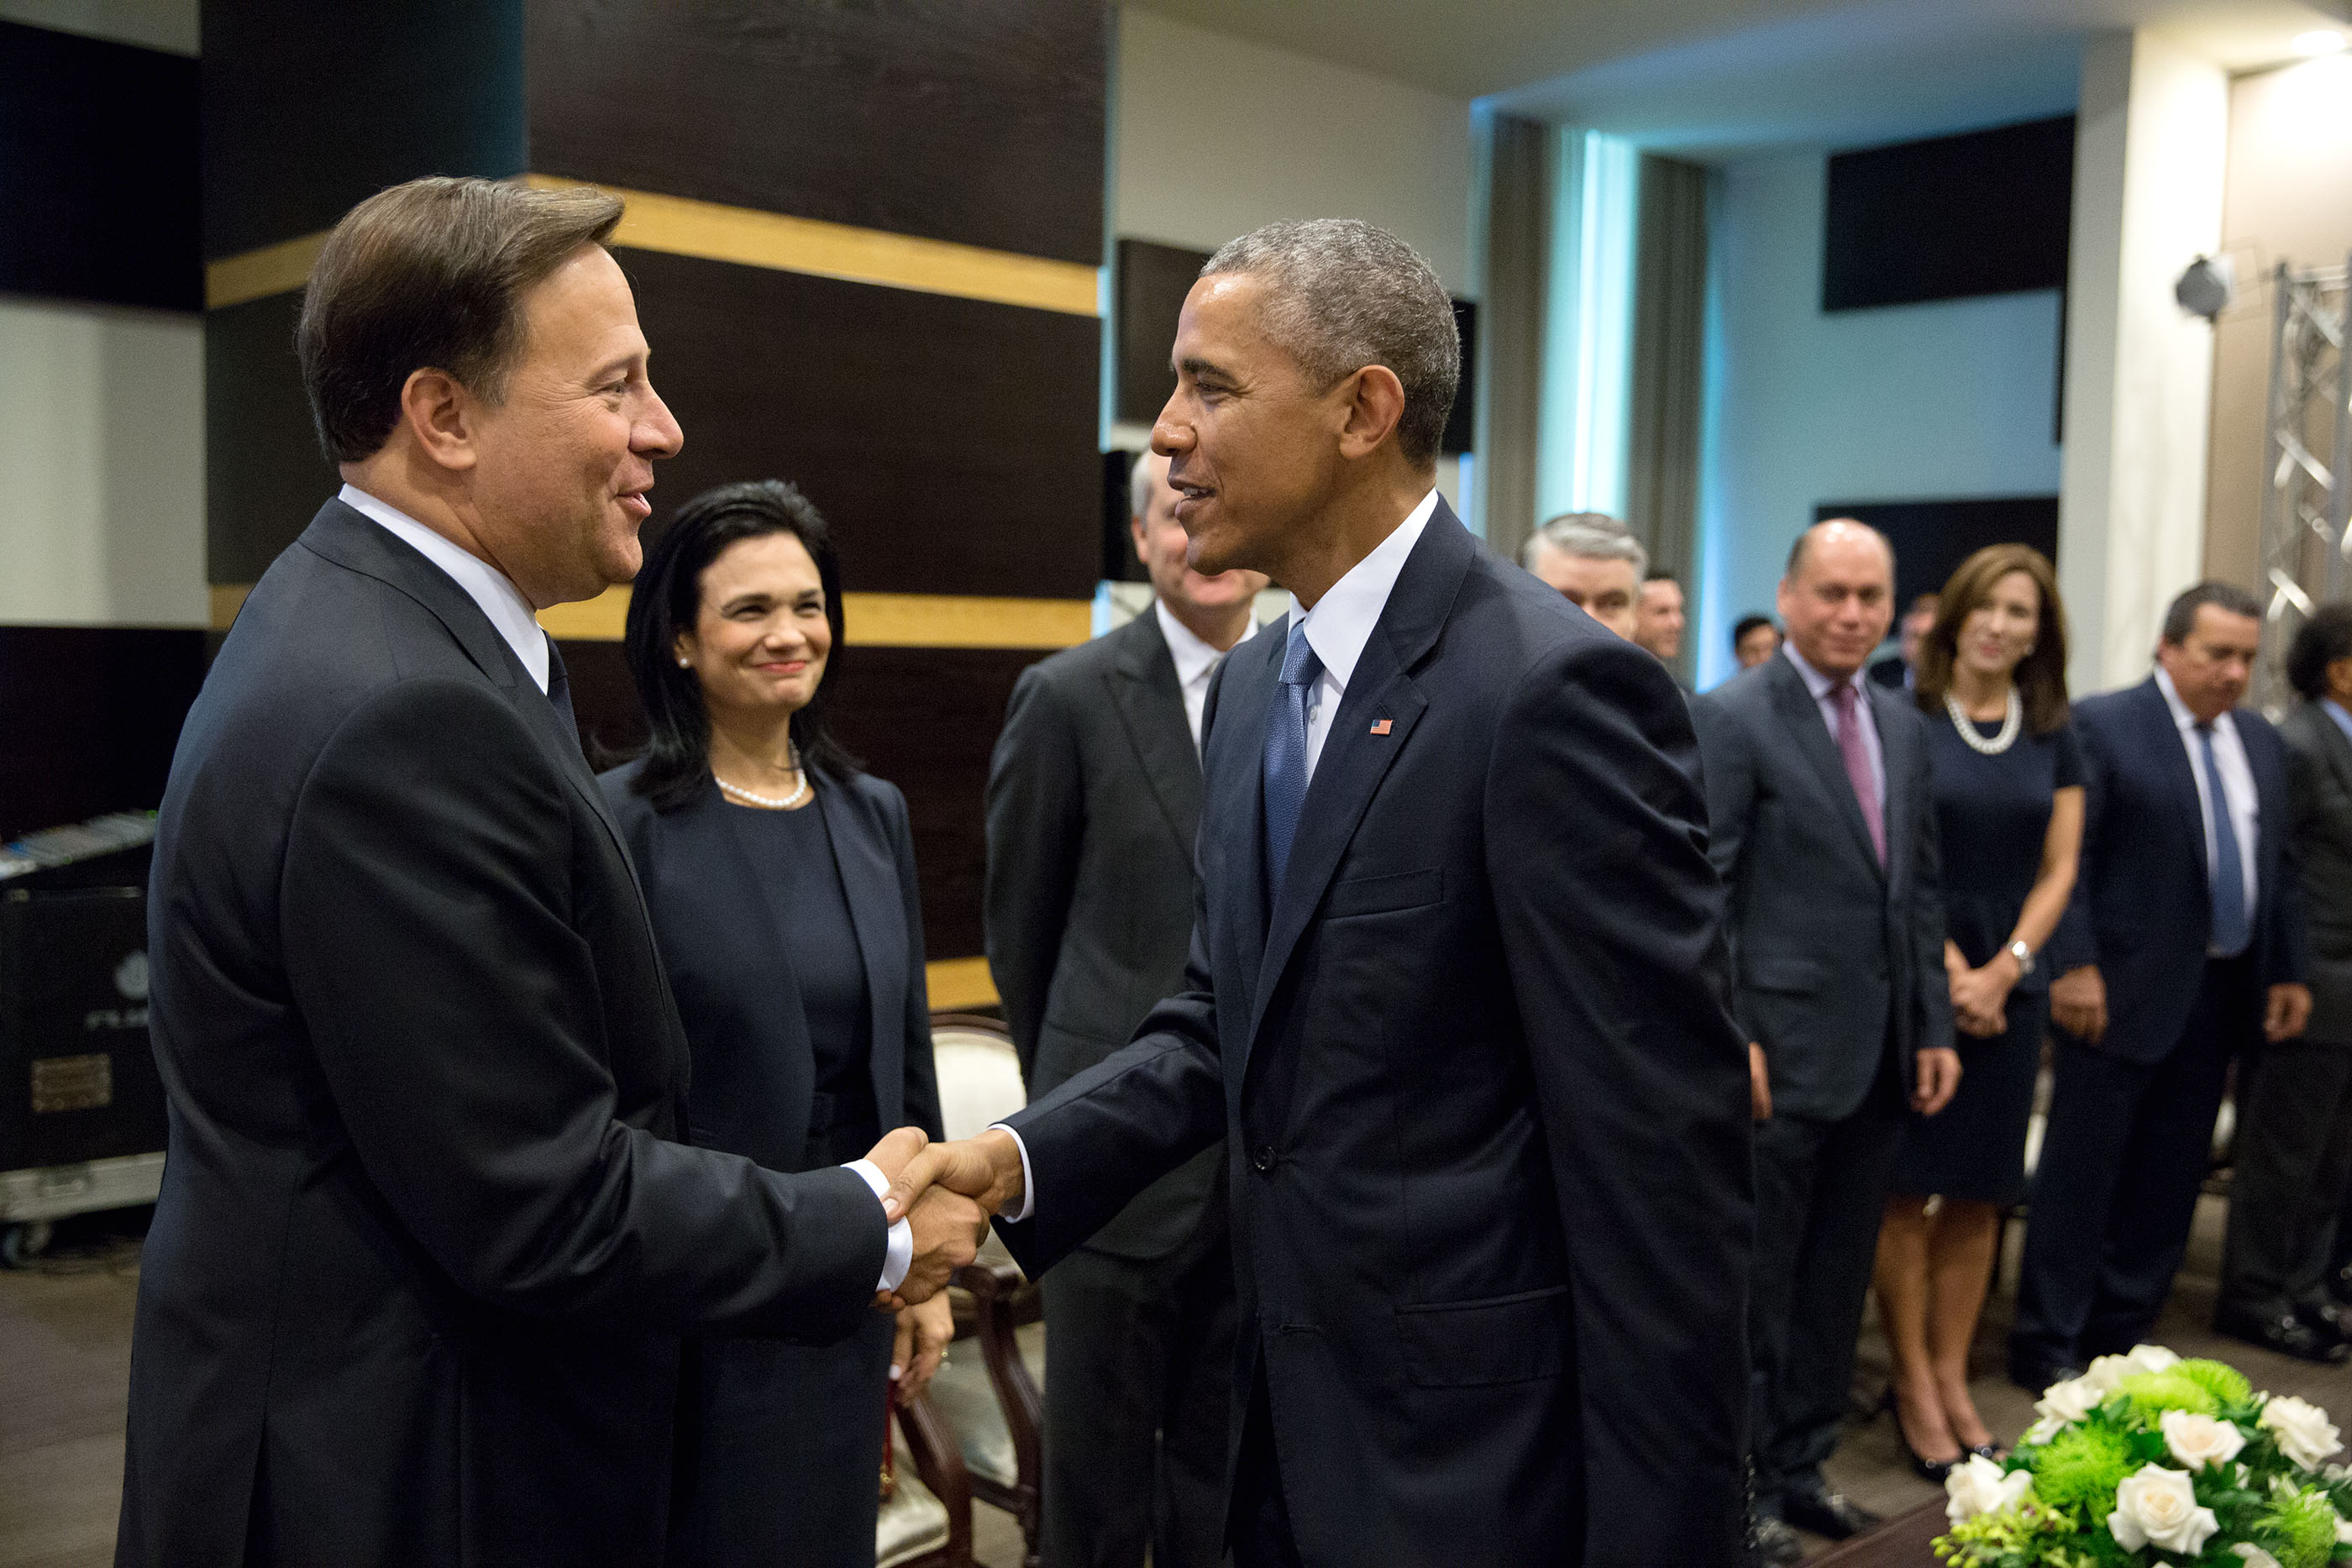 President Obama greets President Juan Carlos Varela of Panama, the host of the Summit of the Americas, before their bilateral meeting. (Official White House Photo by Pete Souza)